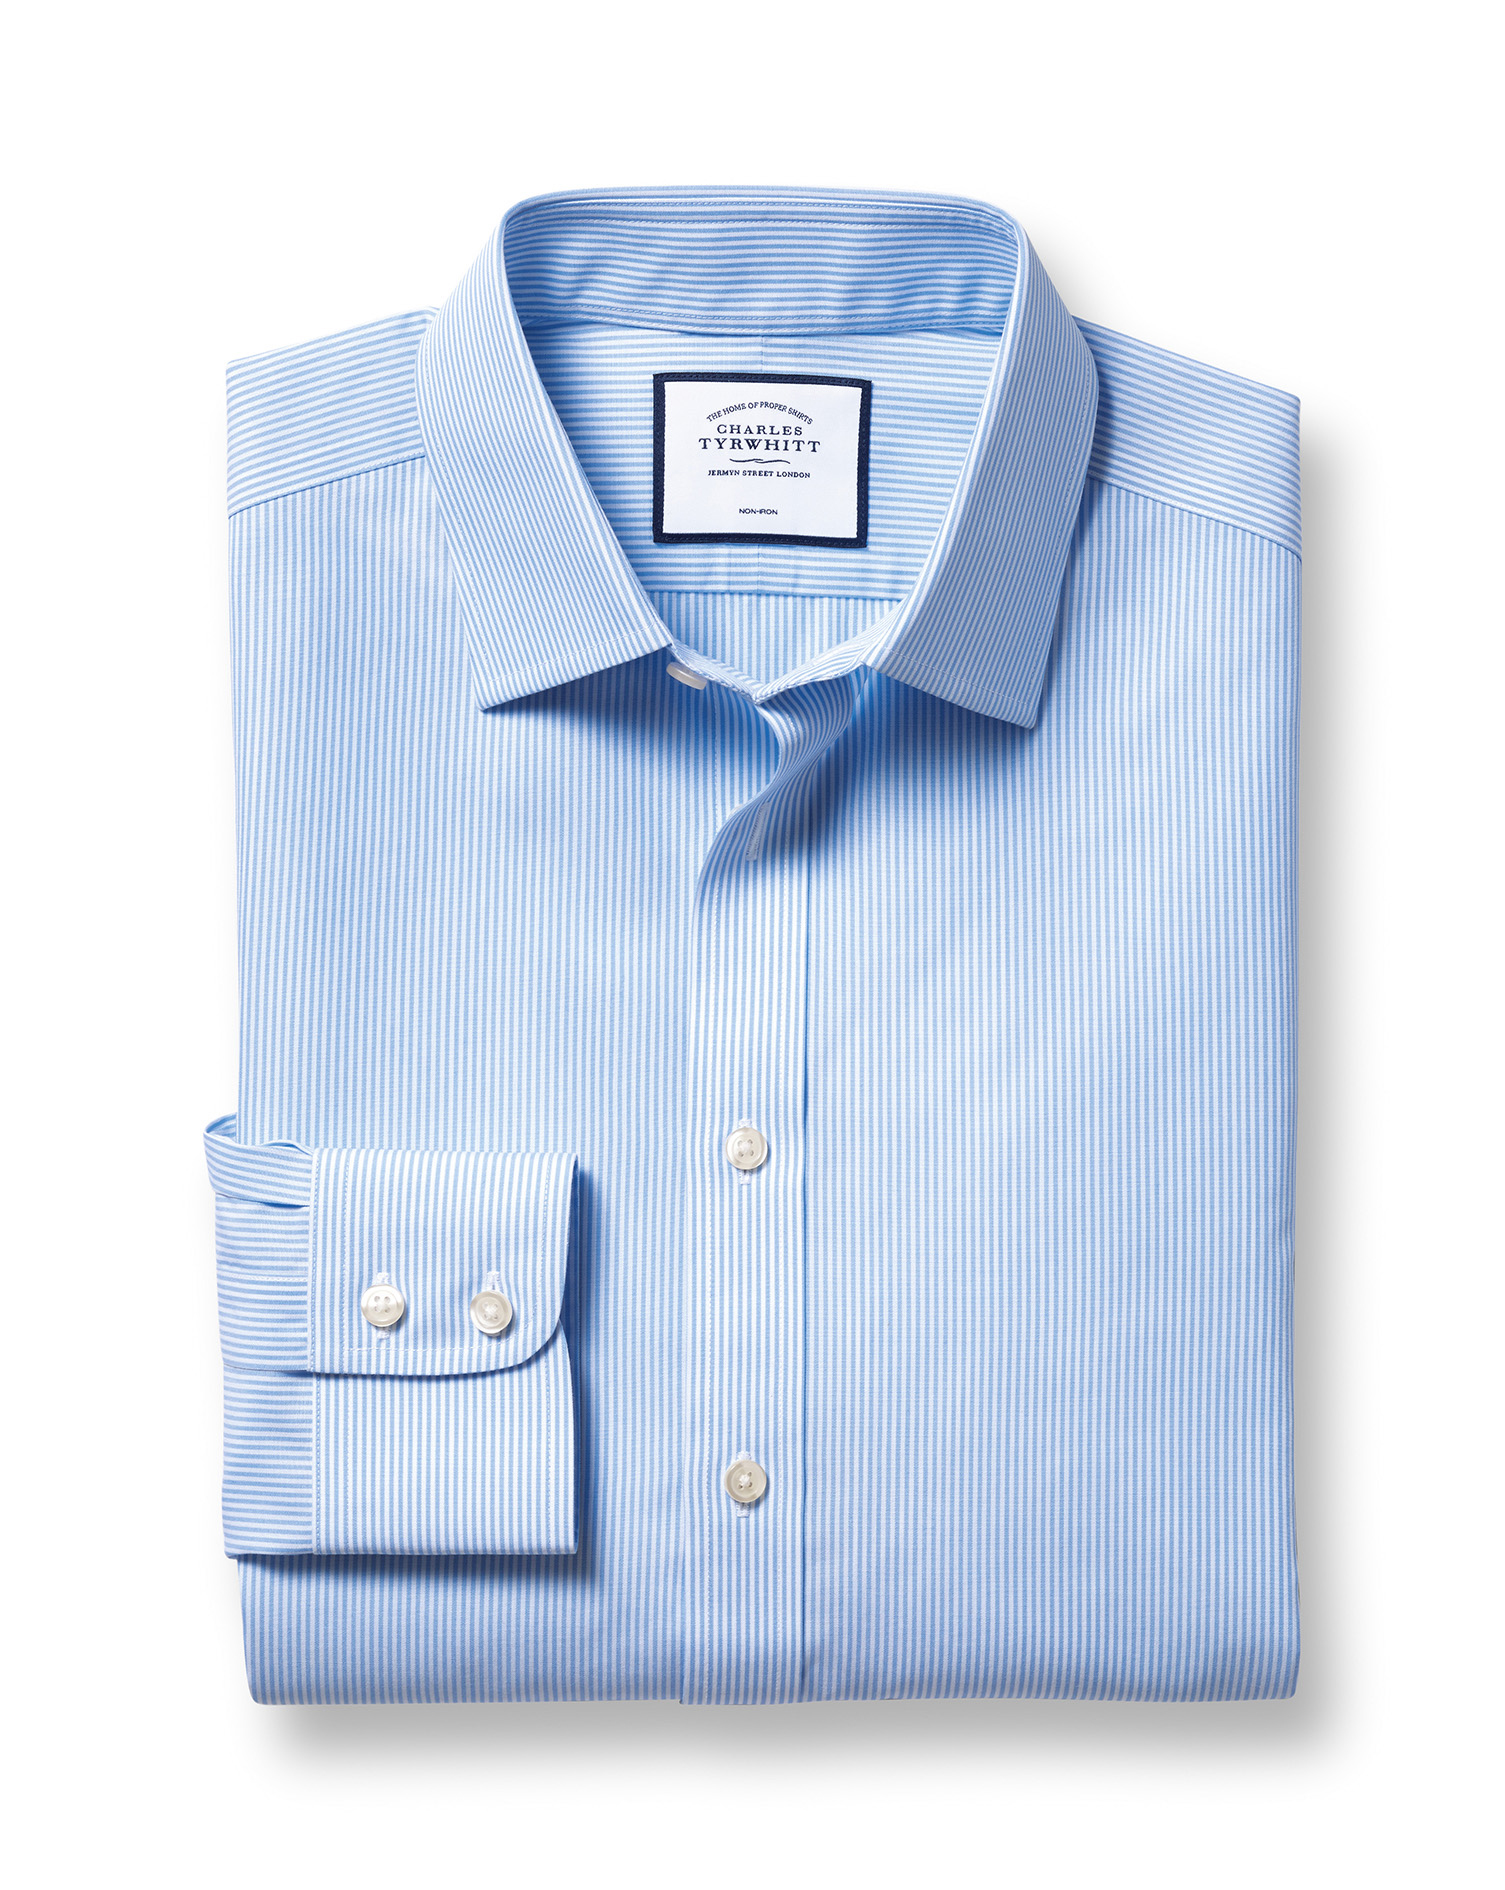 Classic Fit Non-Iron Bengal Stripe Sky Blue Cotton Formal Shirt Single Cuff Size 17.5/35 by Charles